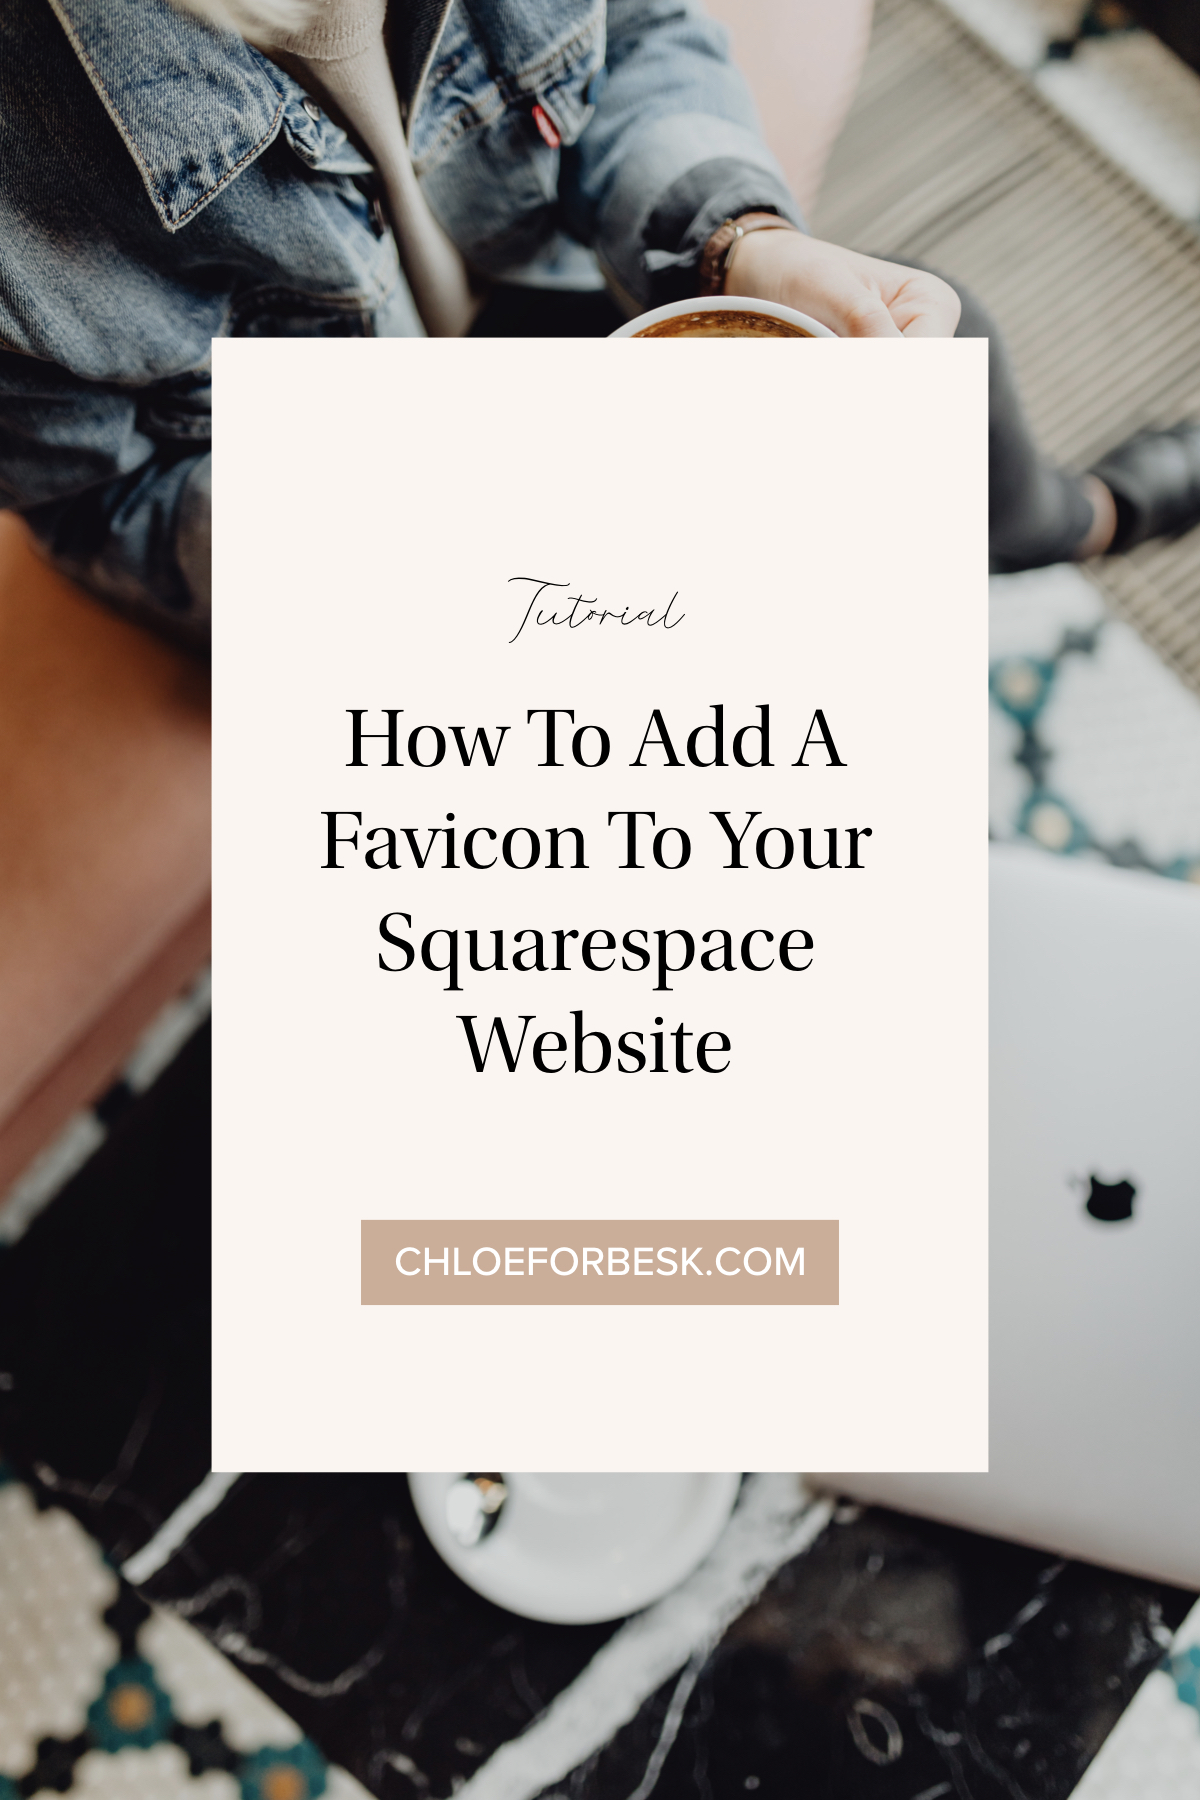 How To Add A Favicon To Your Squarespace Website.001.jpeg